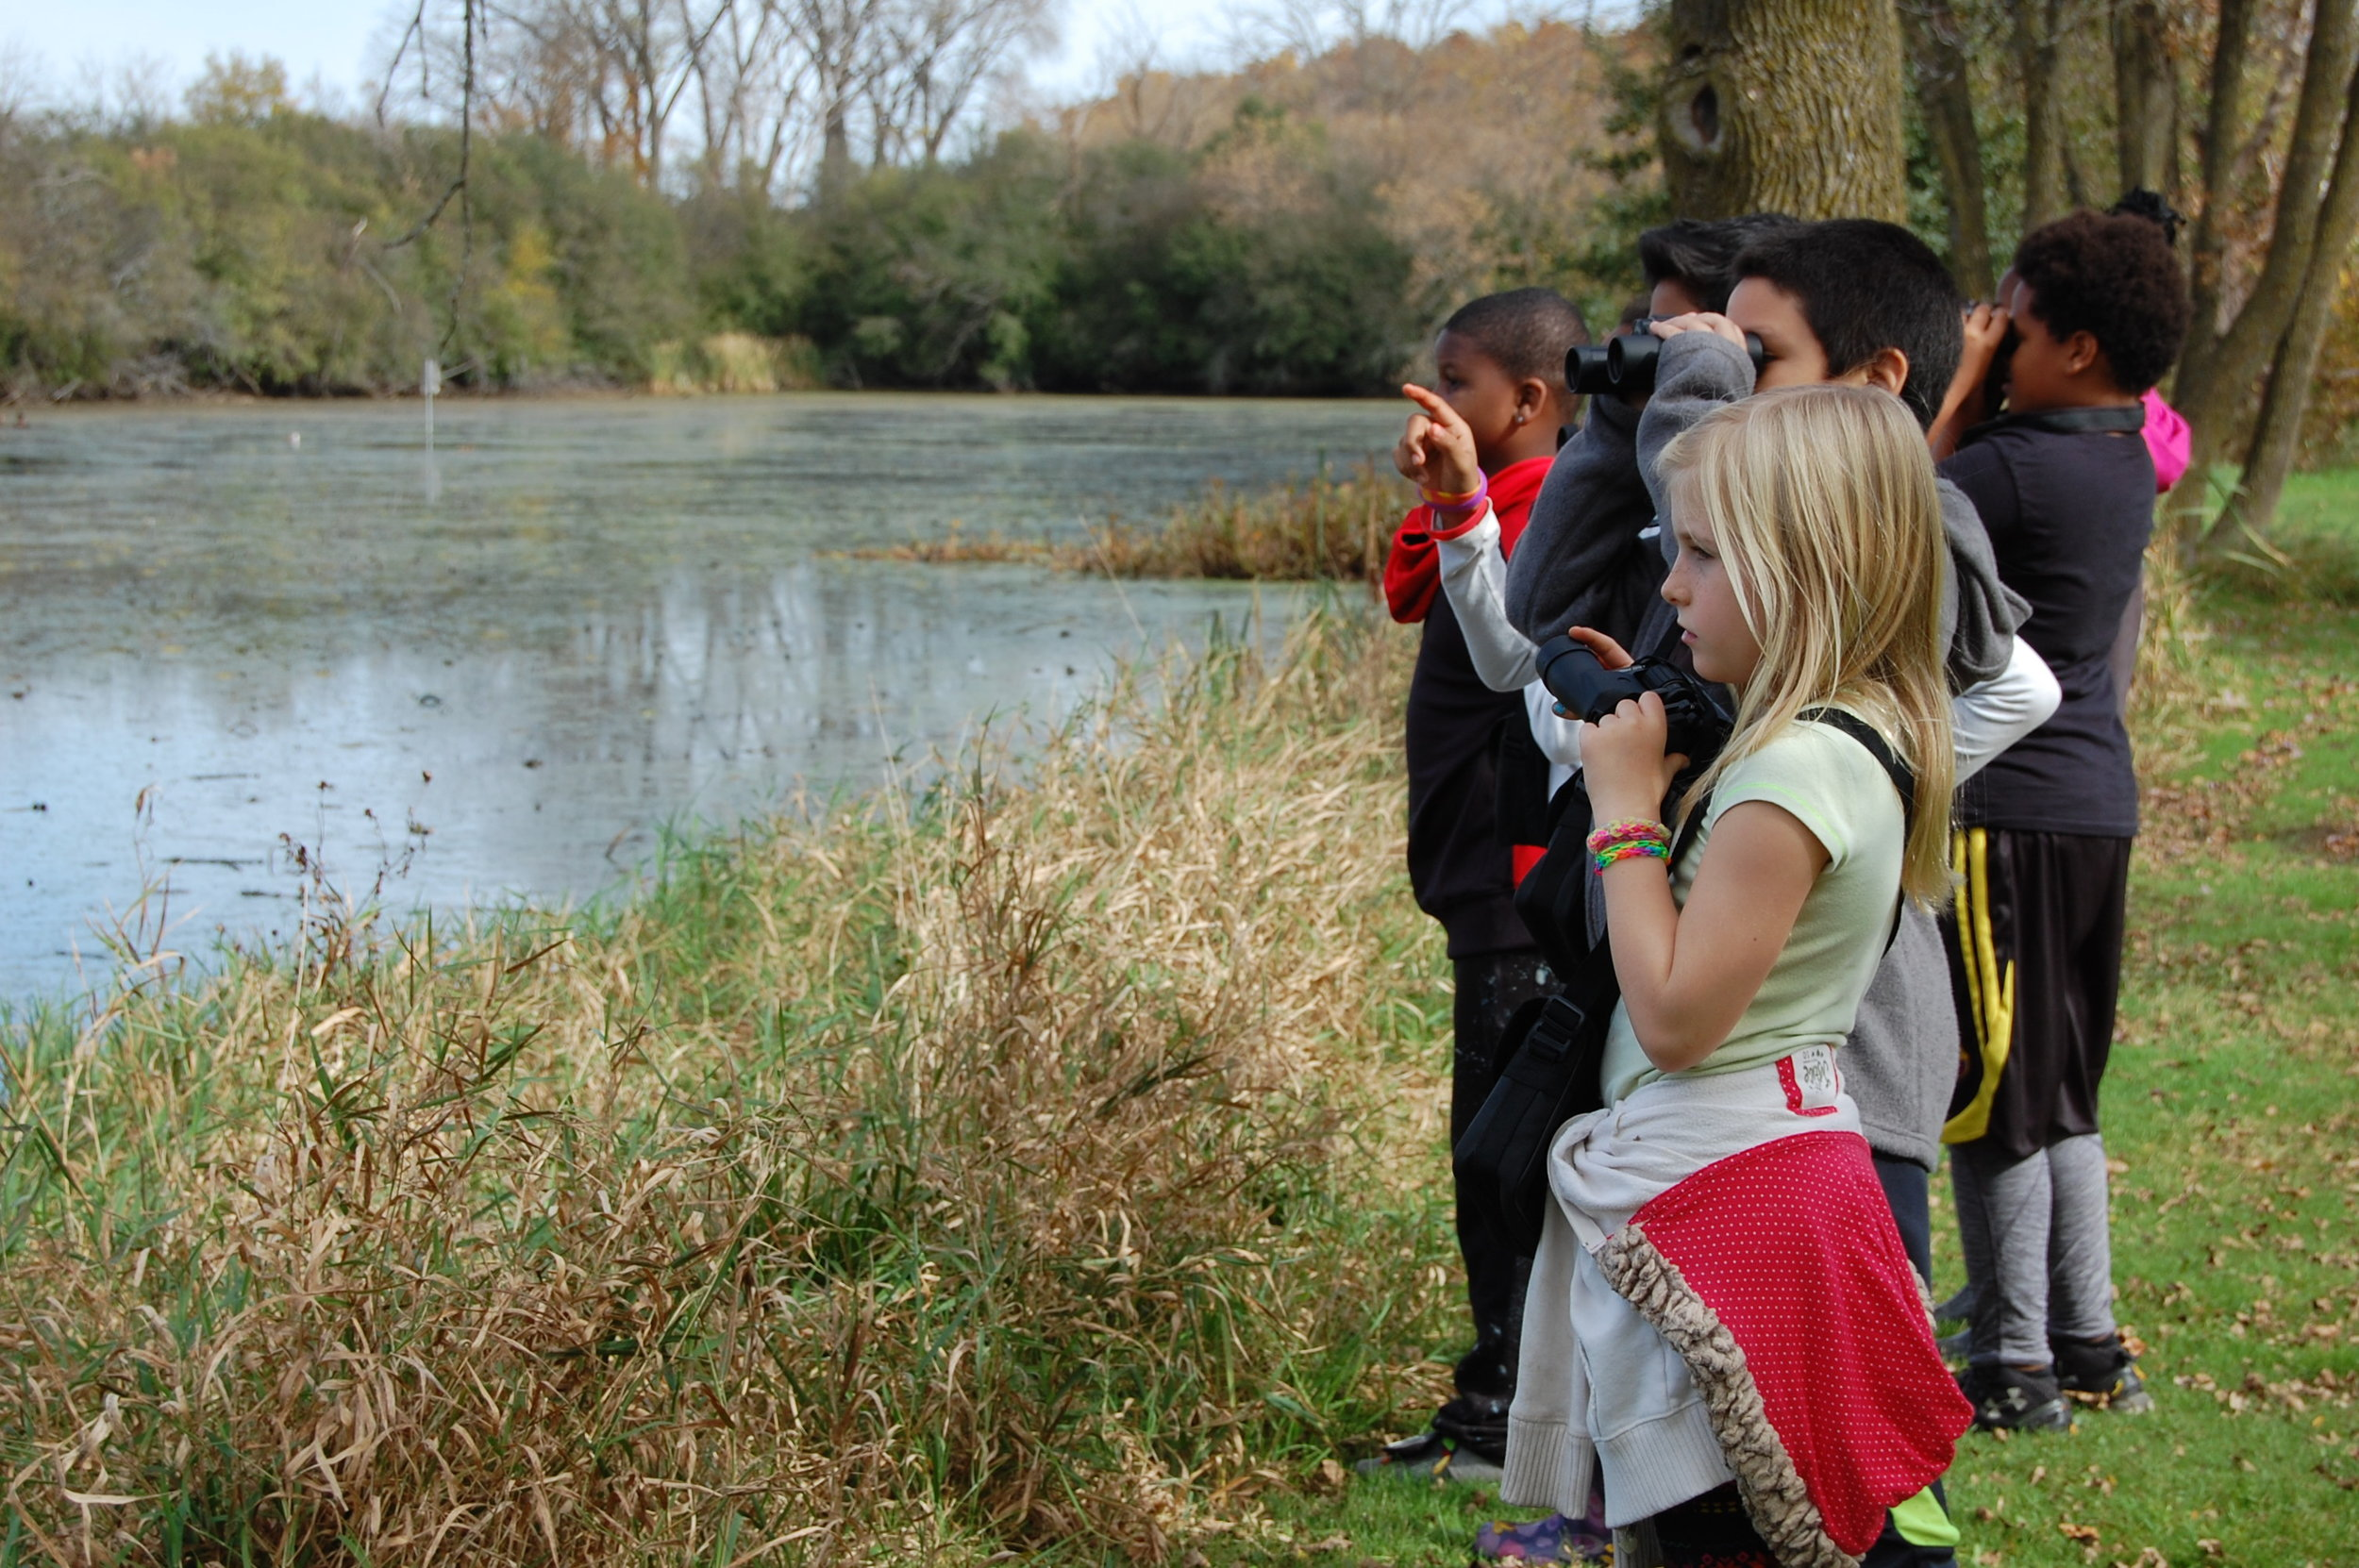 Students identify ducks during fall migration.